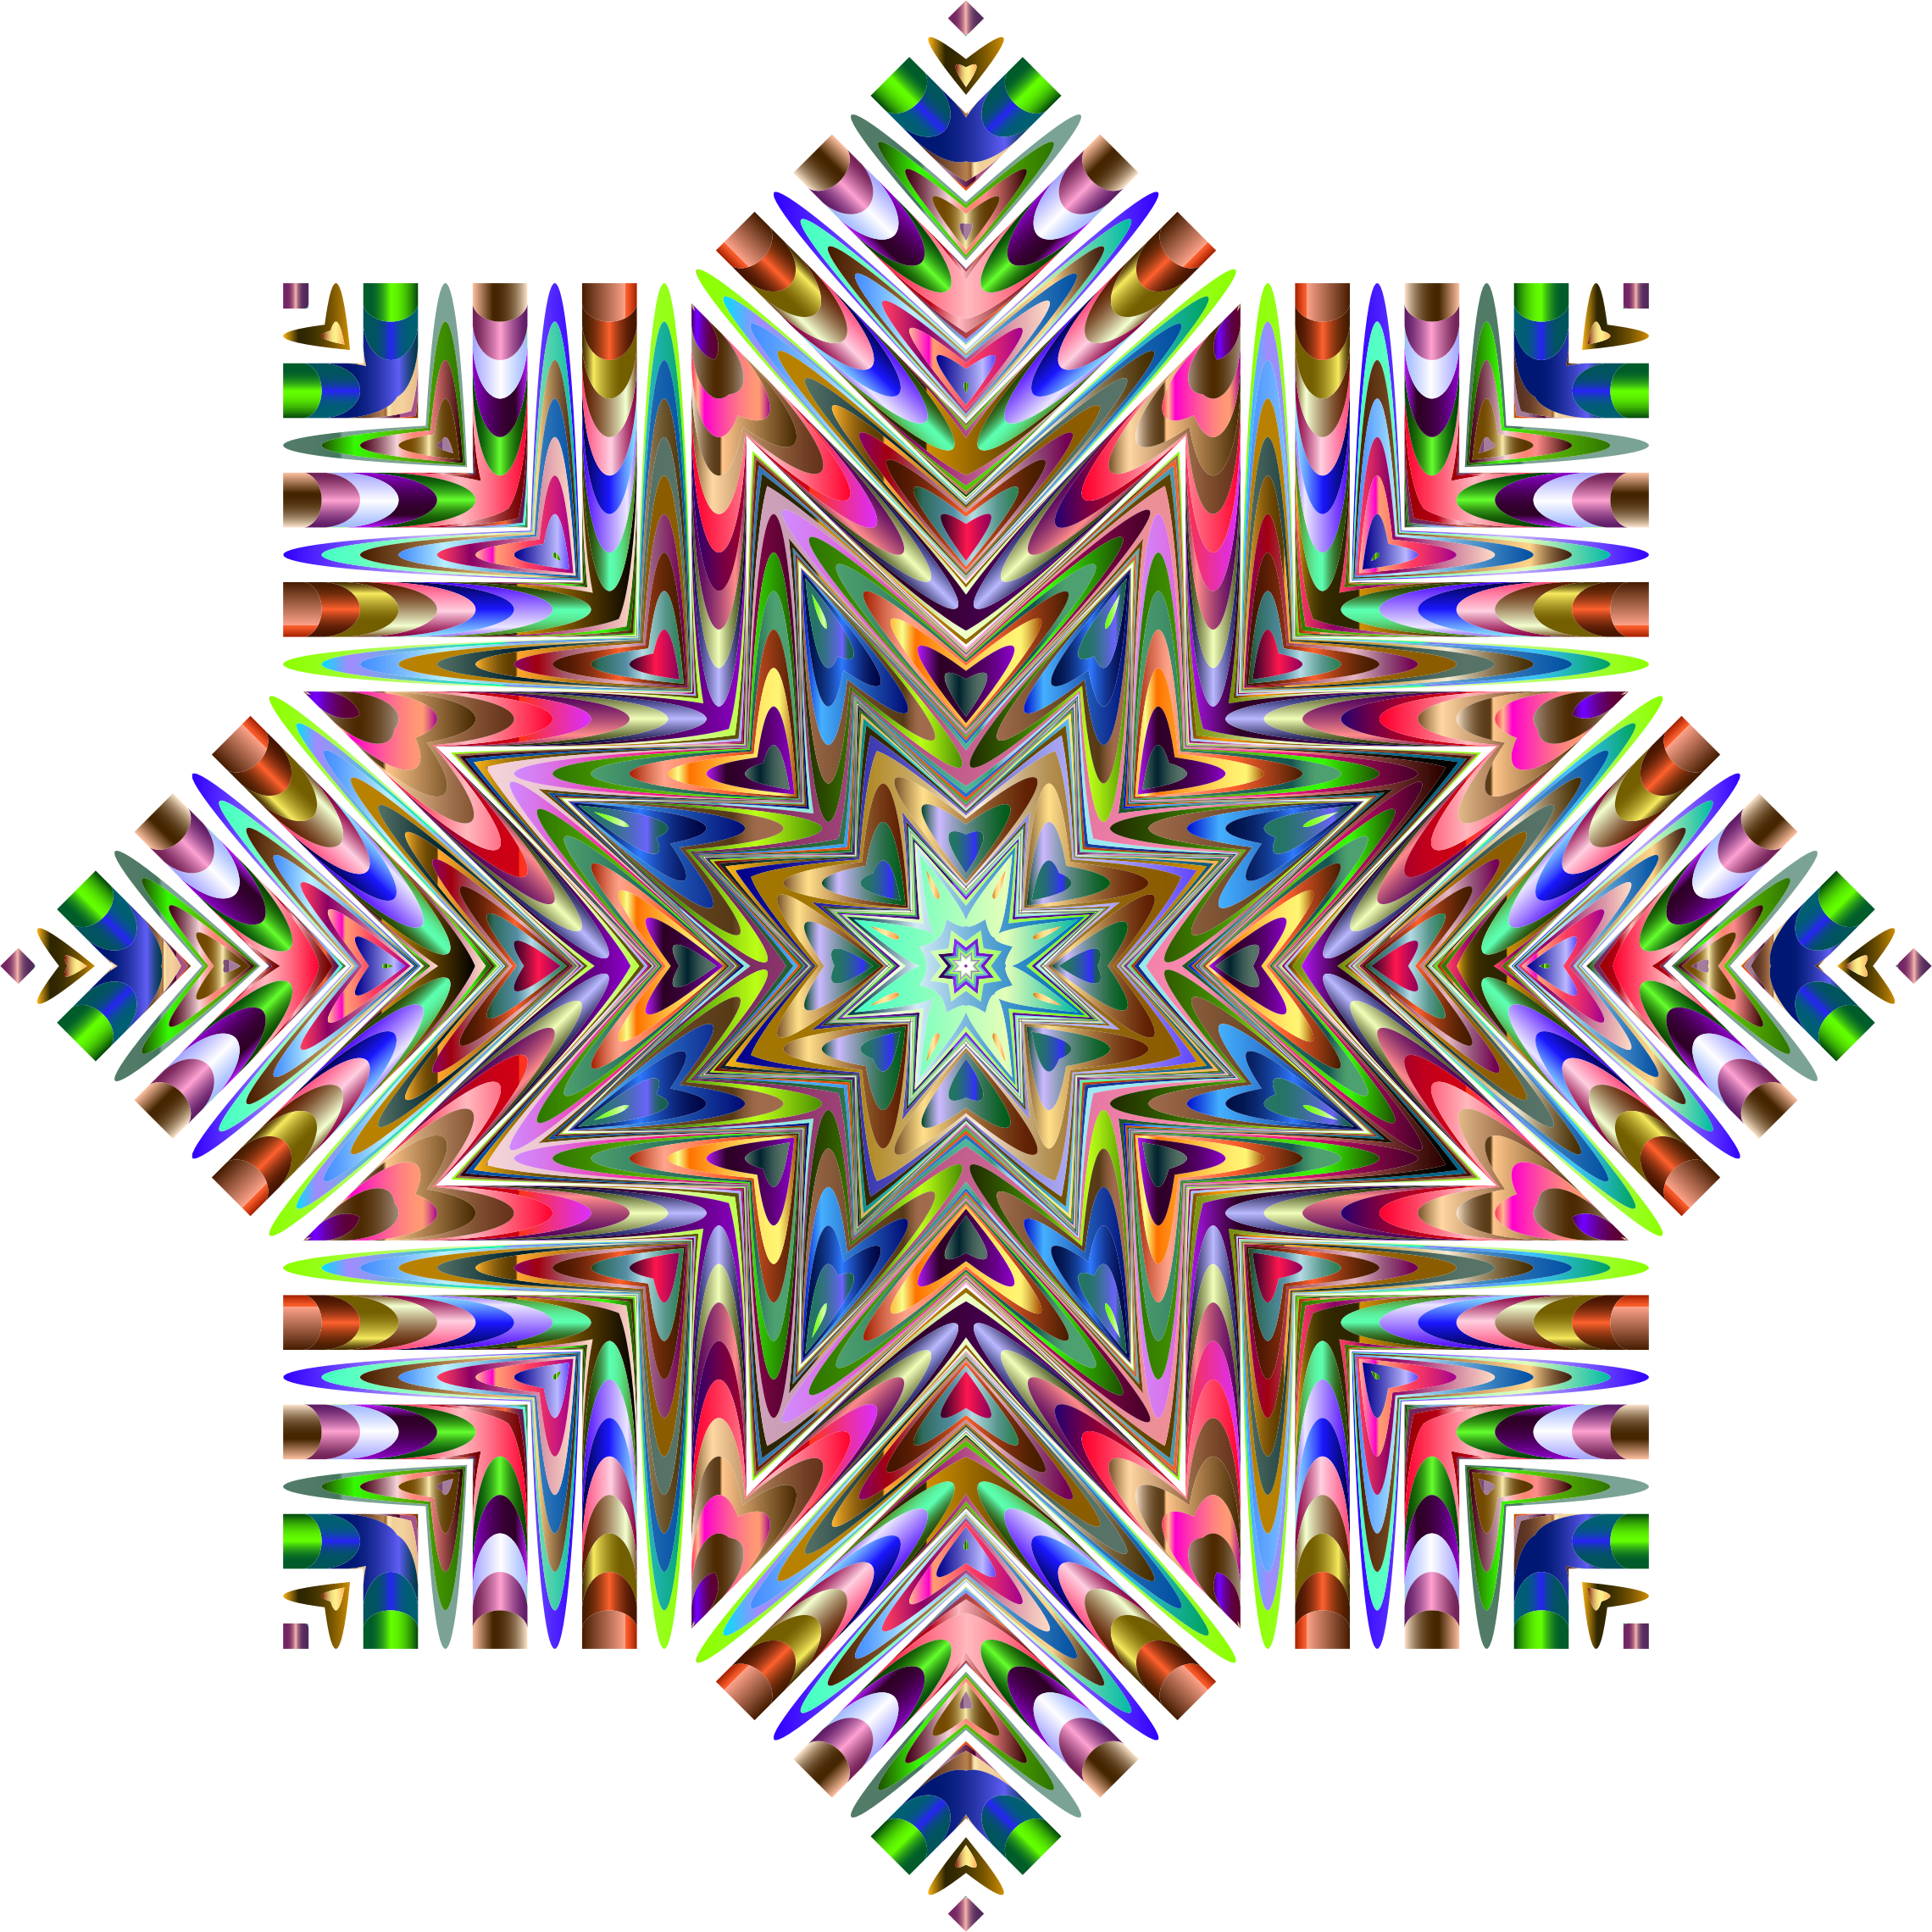 Chromatic Snowflake by GDJ